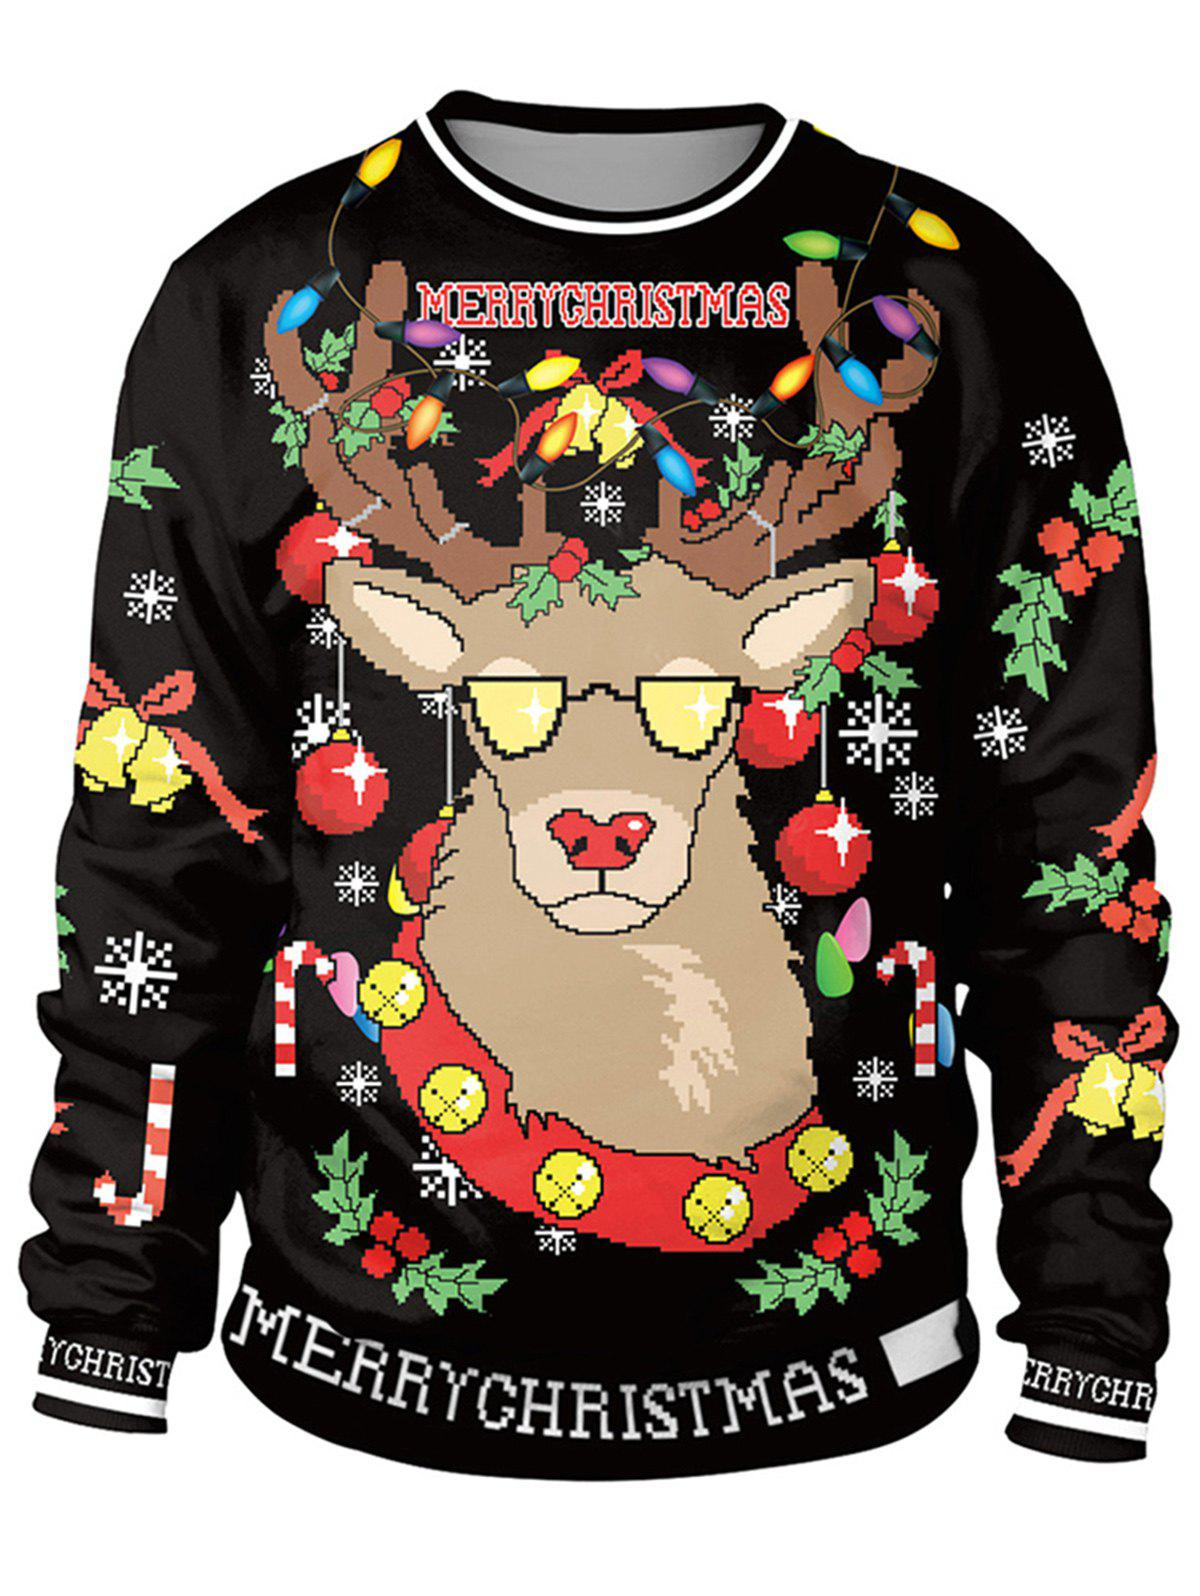 Sale Unisex Funny 3D Graphic Print Reindeer Christmas  Sweatshirt for Xmas Party